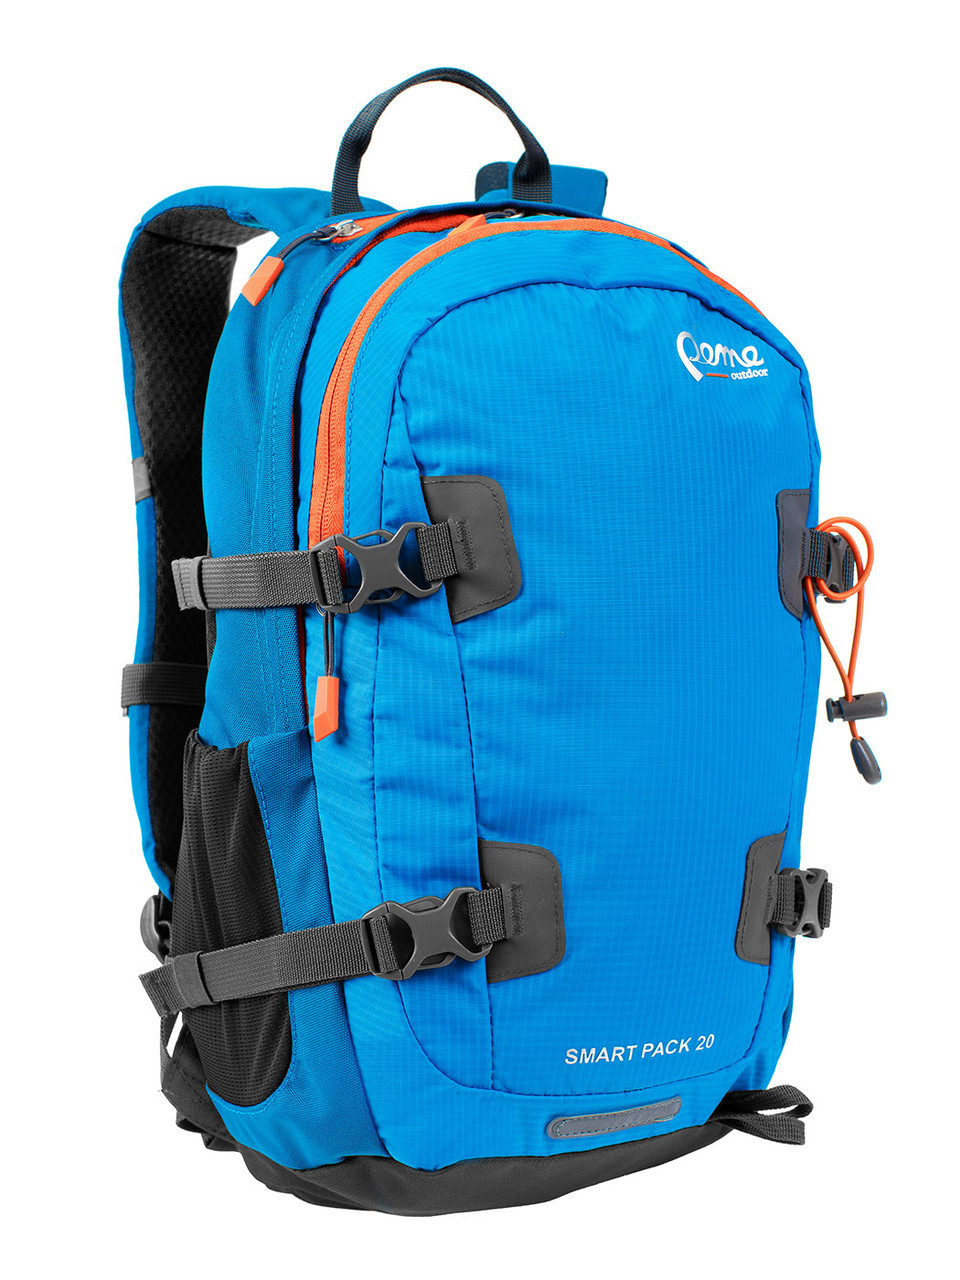 Рюкзак Peme Smart Pack 20 Blue